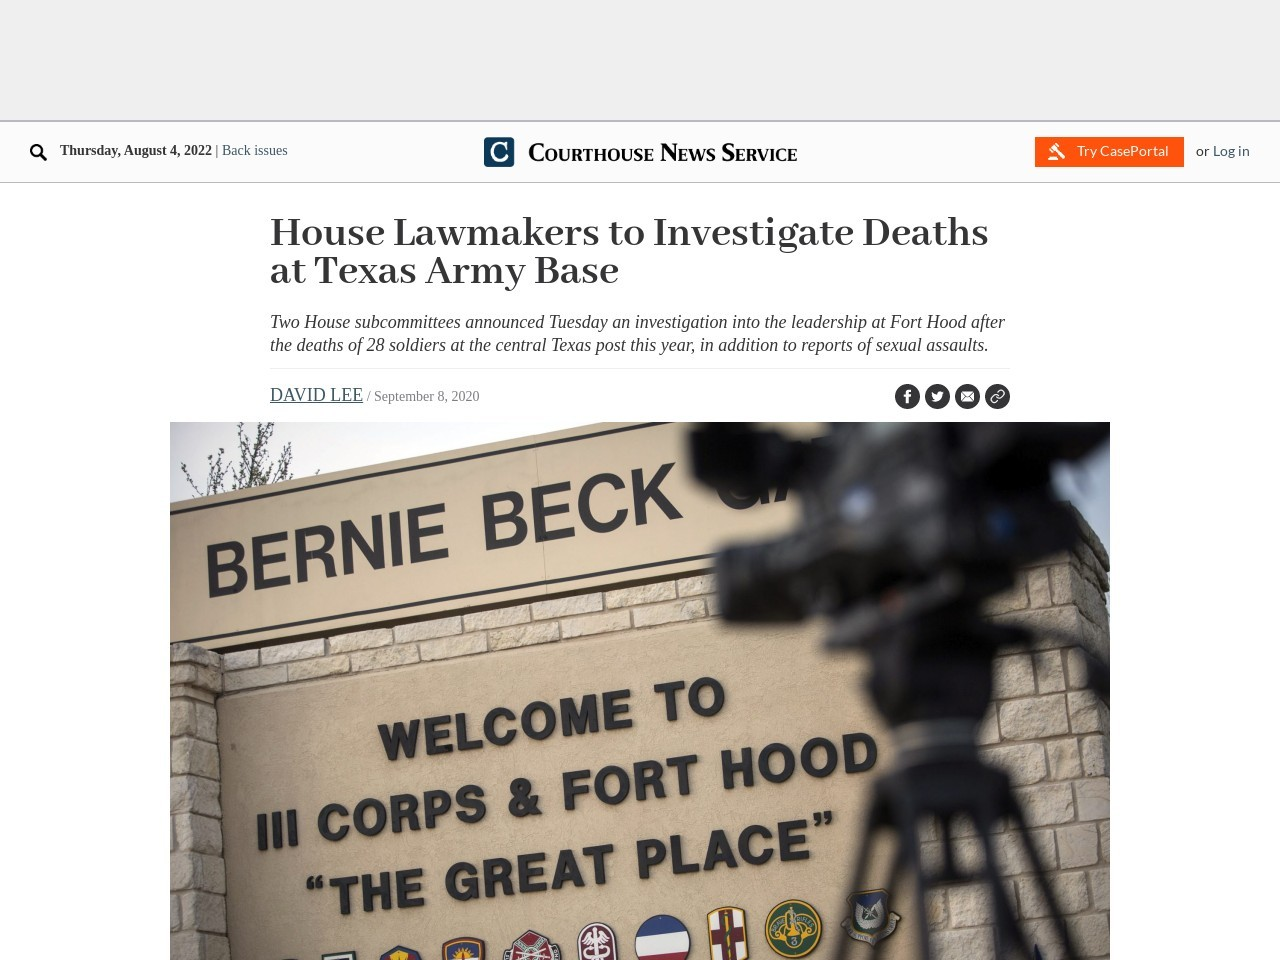 House Lawmakers to Investigate Deaths at Texas Army Base